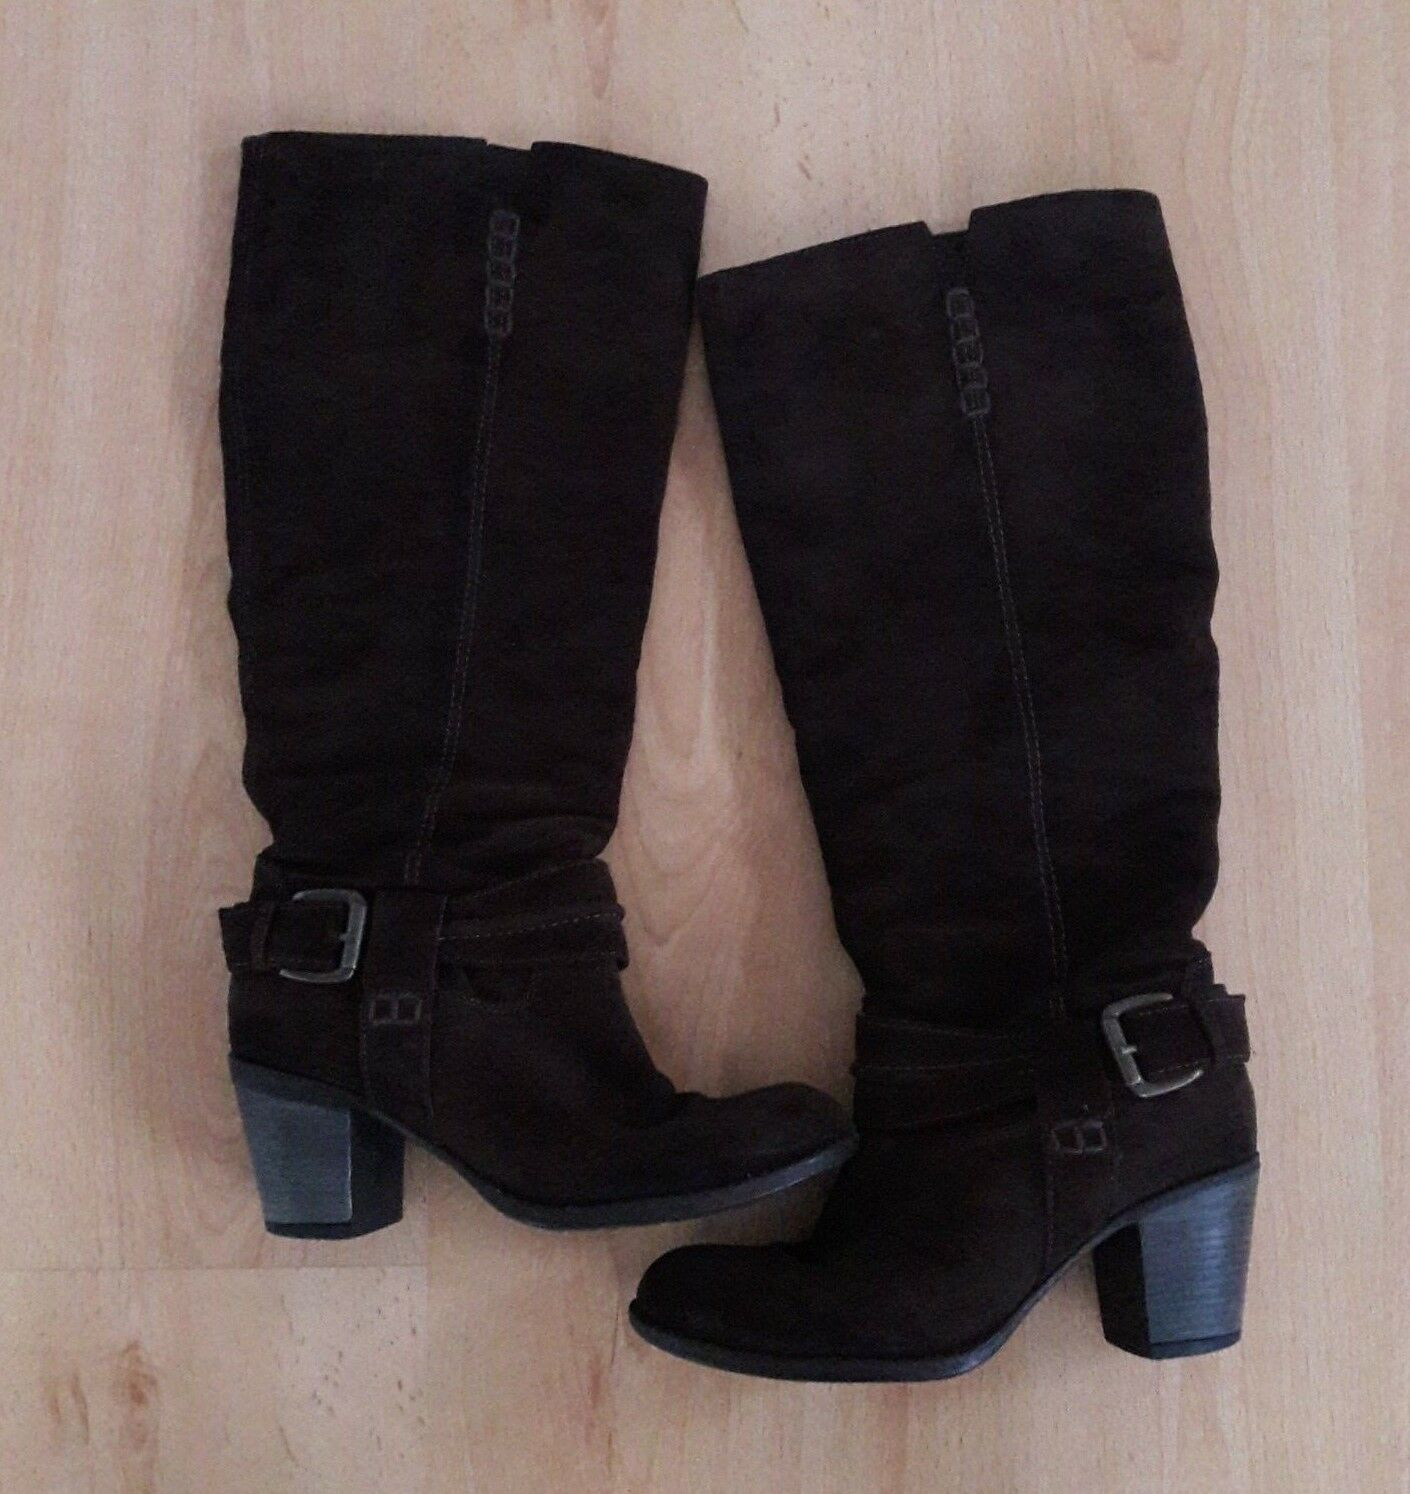 Gorgeous Brown Suede Knee High Heeled Pull On Boots from Next - Size 5 - Great